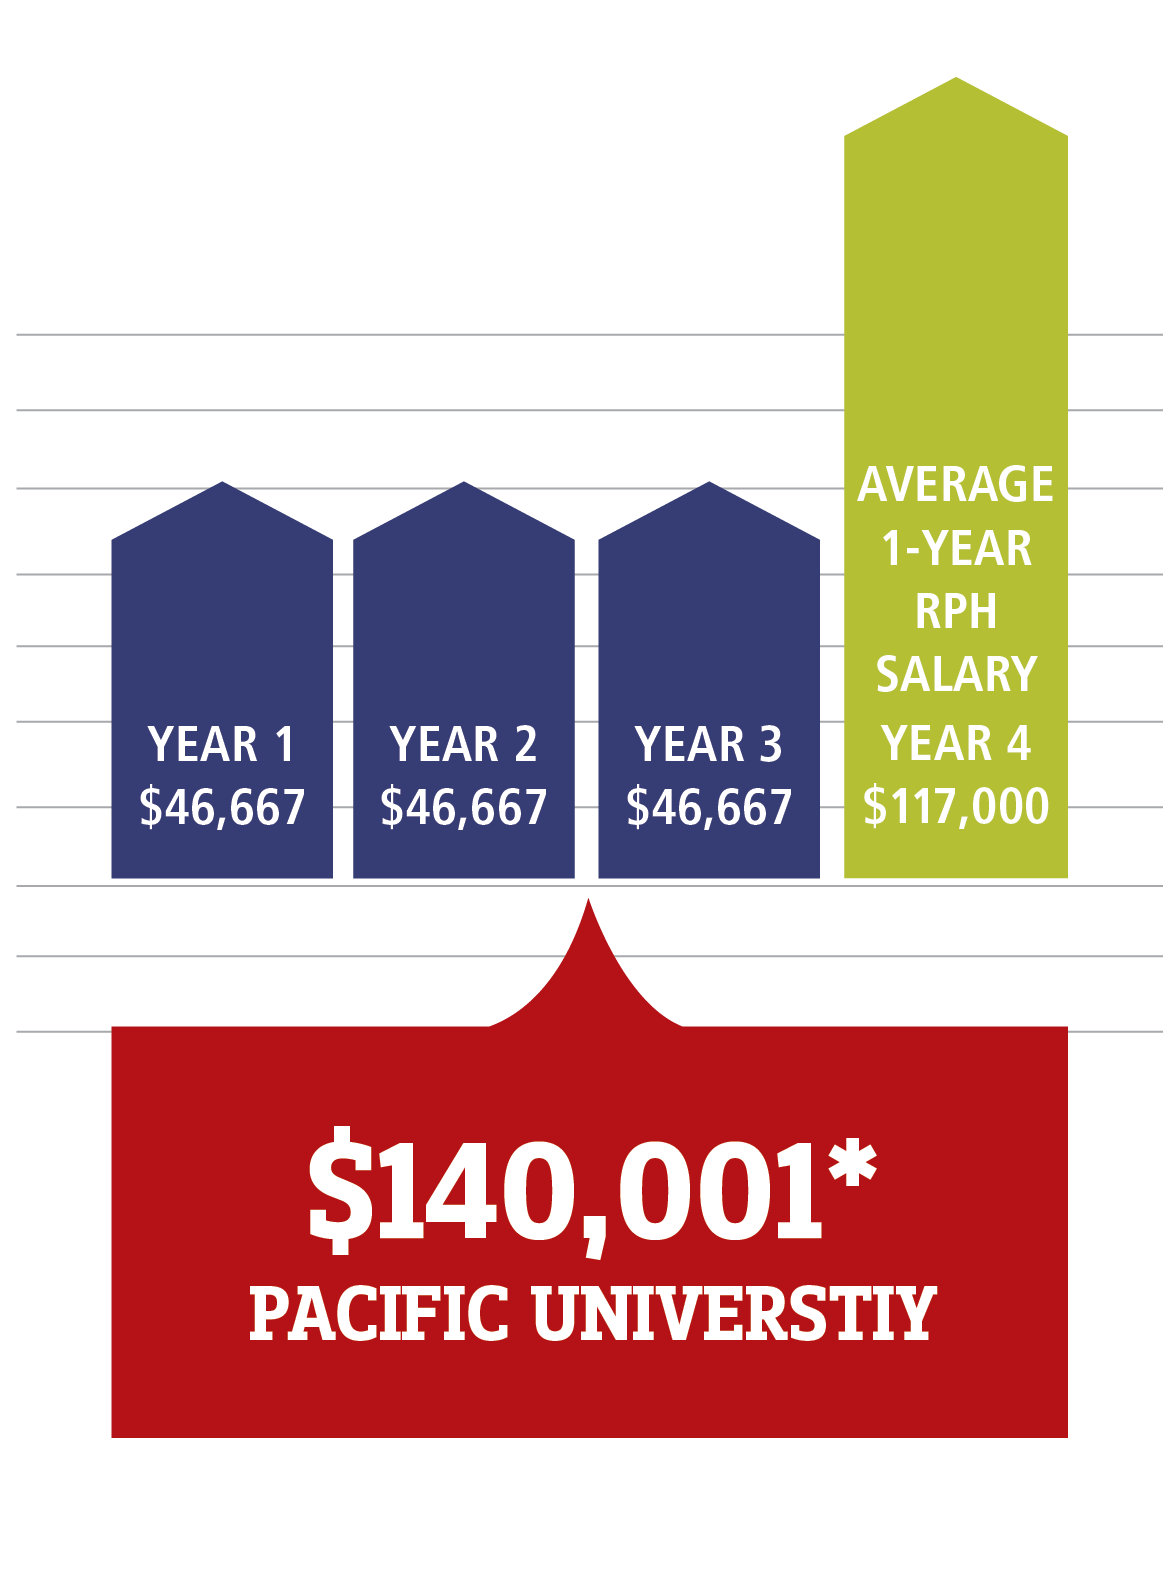 infograph. $140,001 cost of Pacific University's 3-year PharmD program